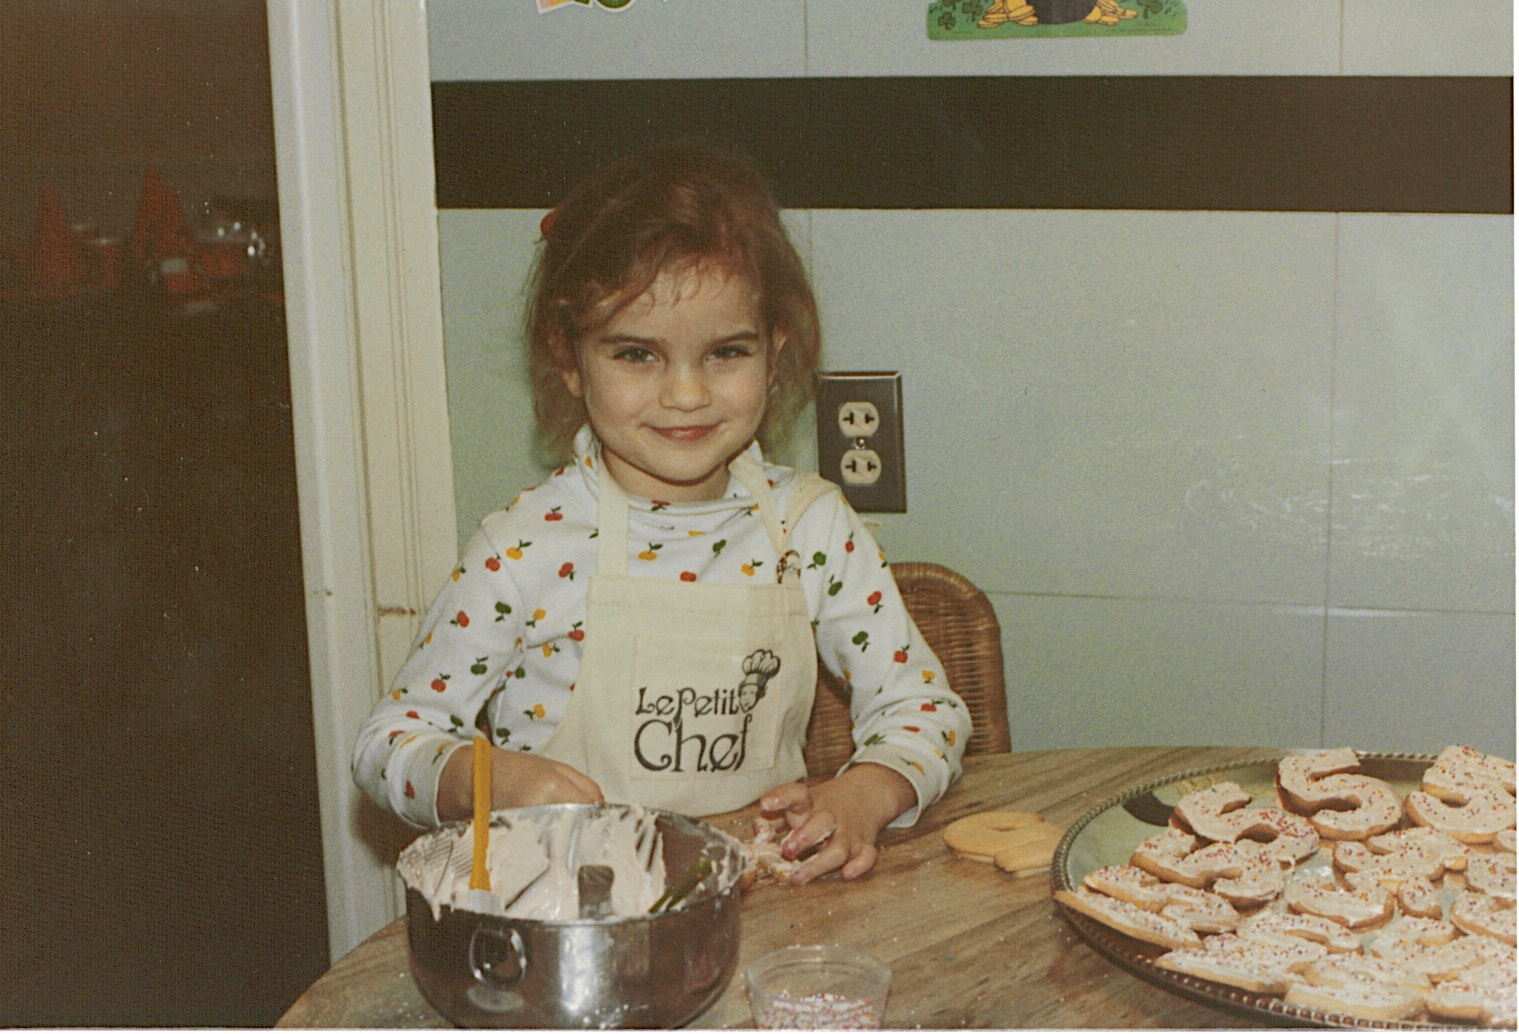 Decorating my fifth birthday sugar cookies, March 1983